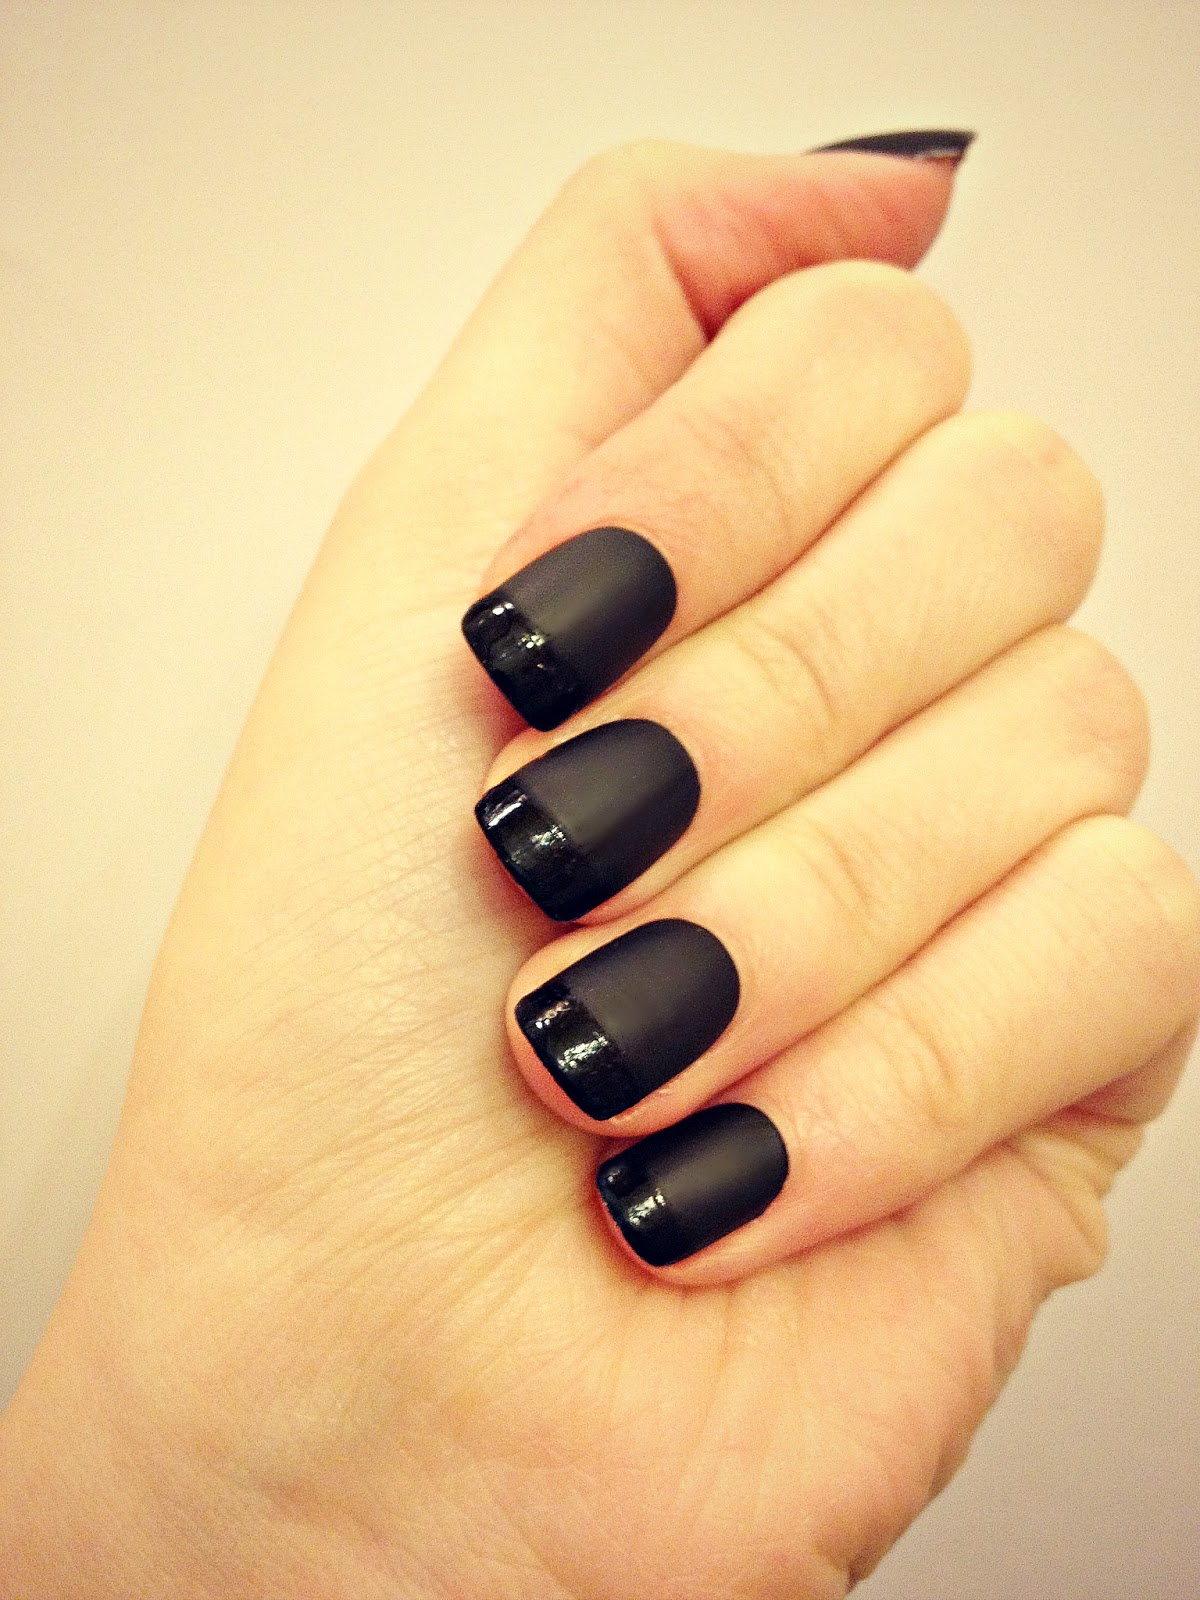 Sybella Nails : black matte manicure nails